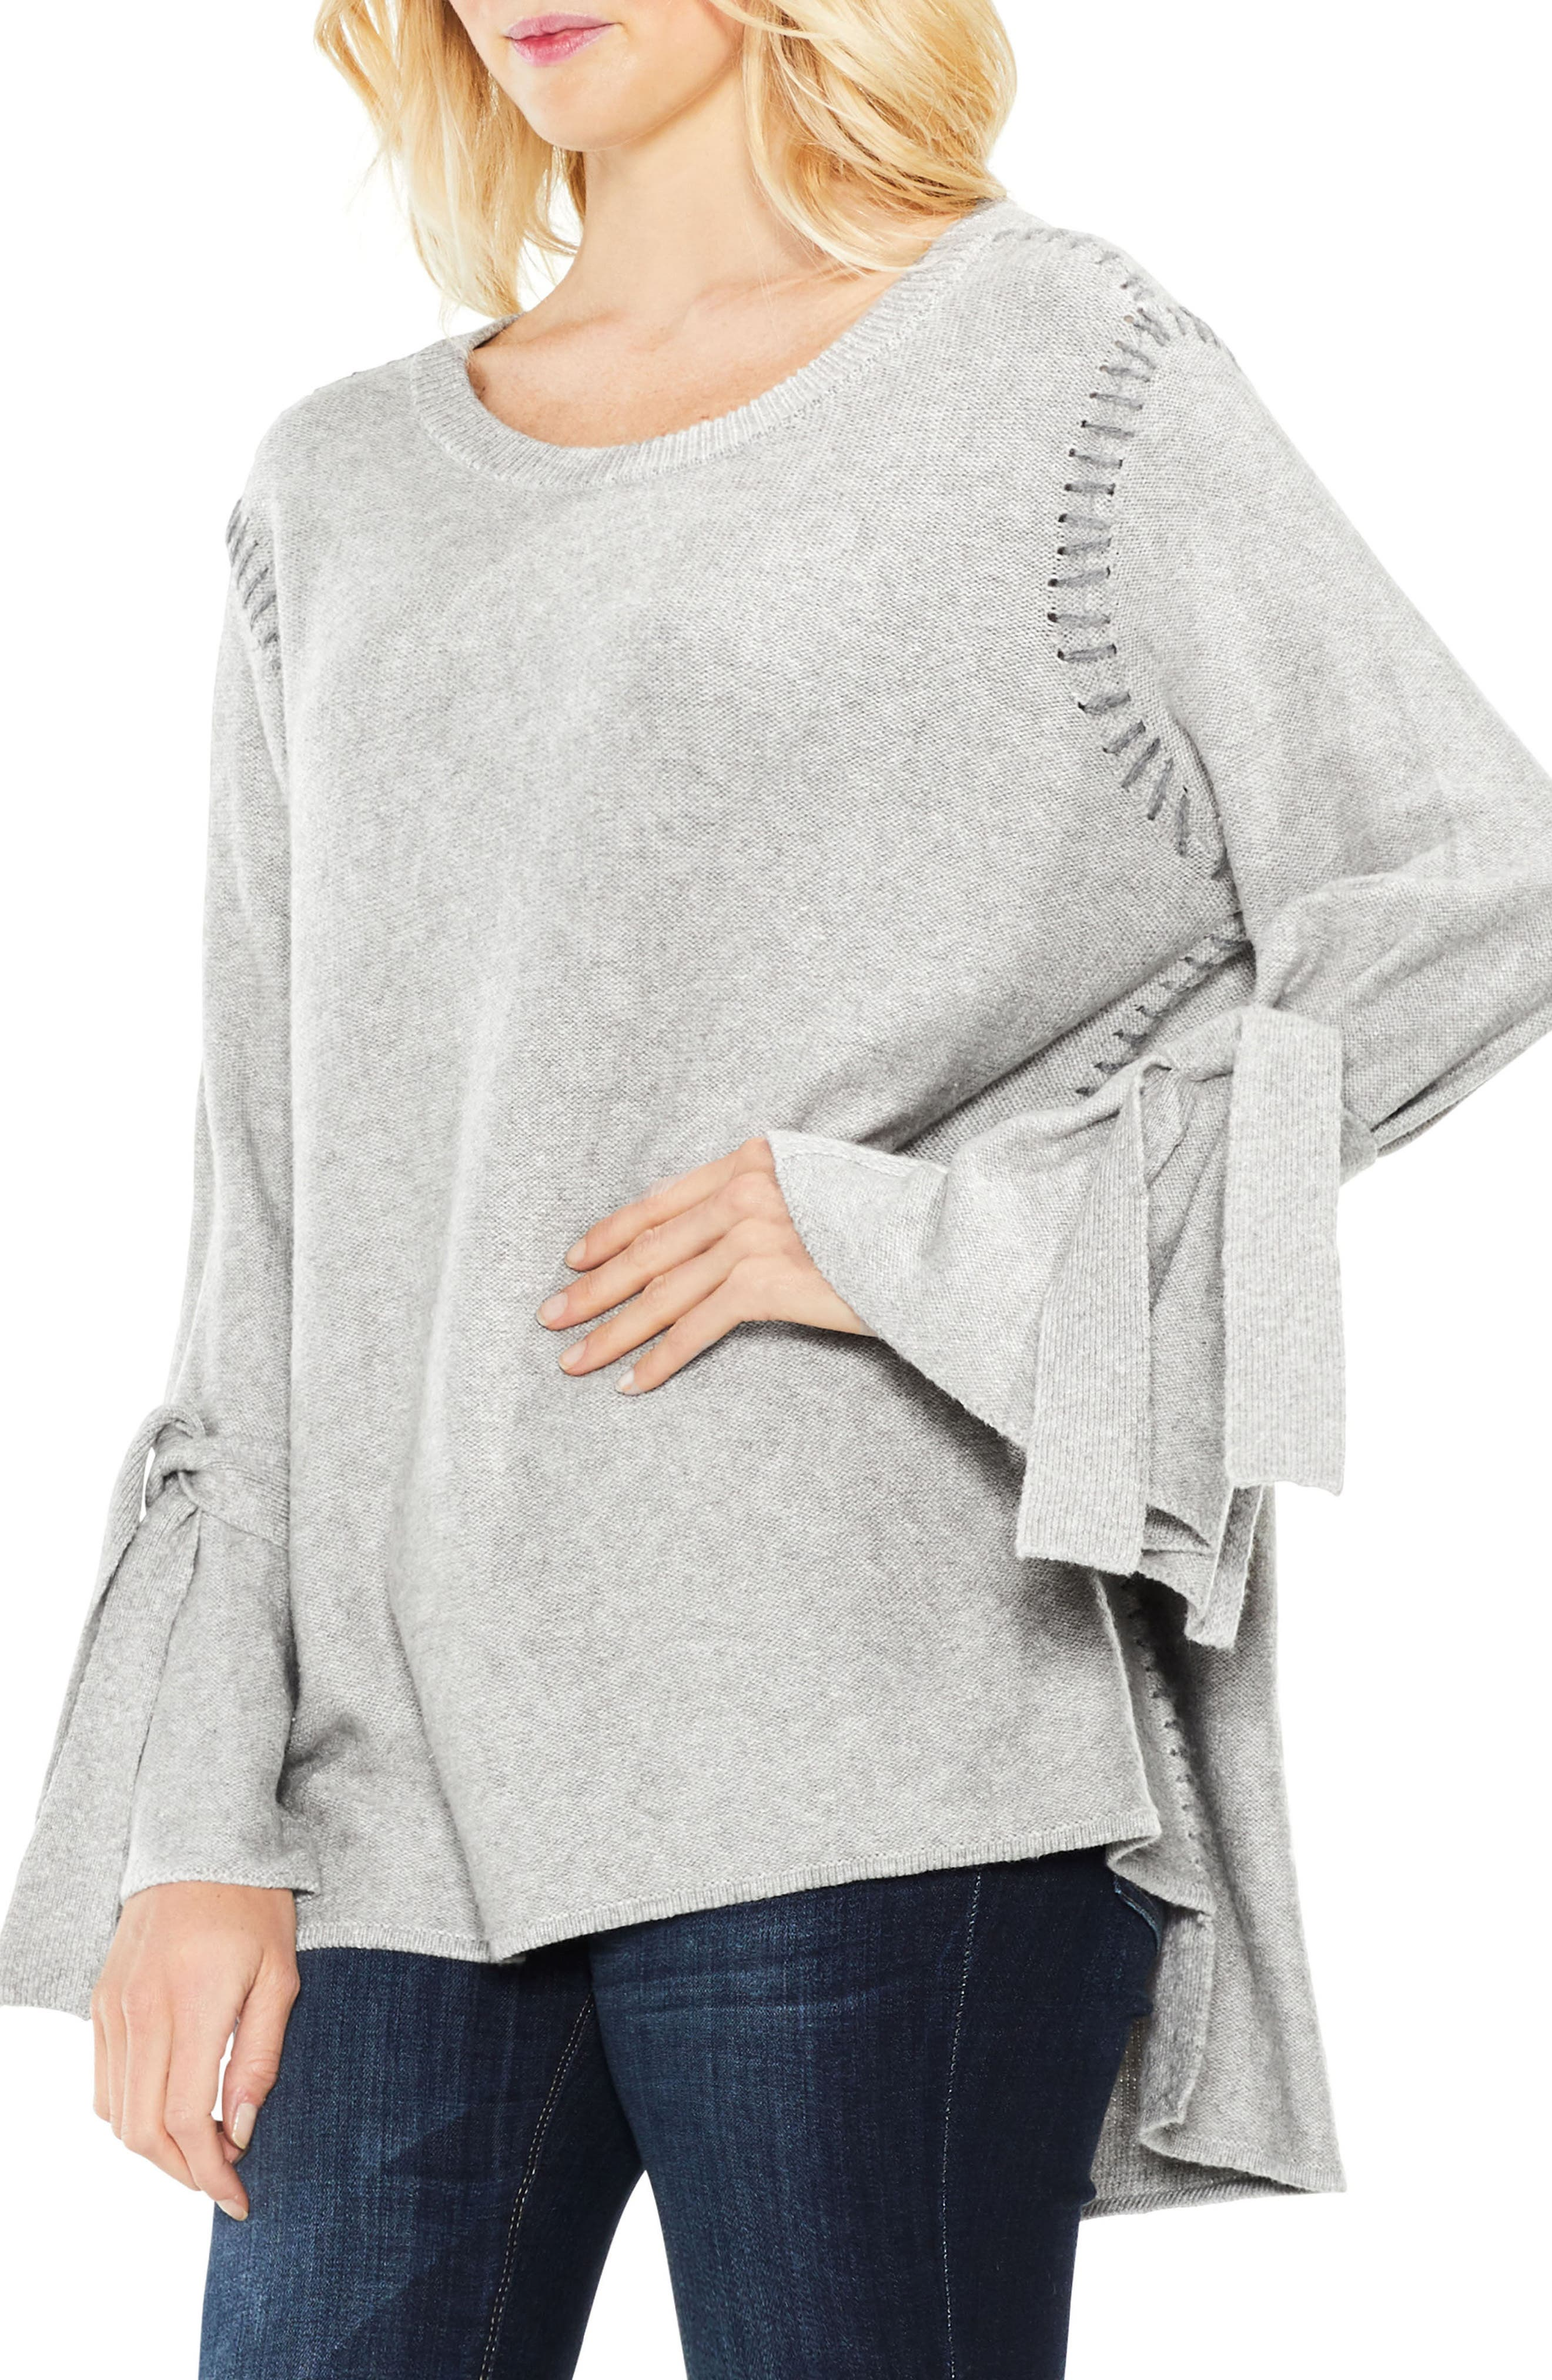 Alternate Image 1 Selected - Two by Vince Camuto Tie Sleeve Sweater